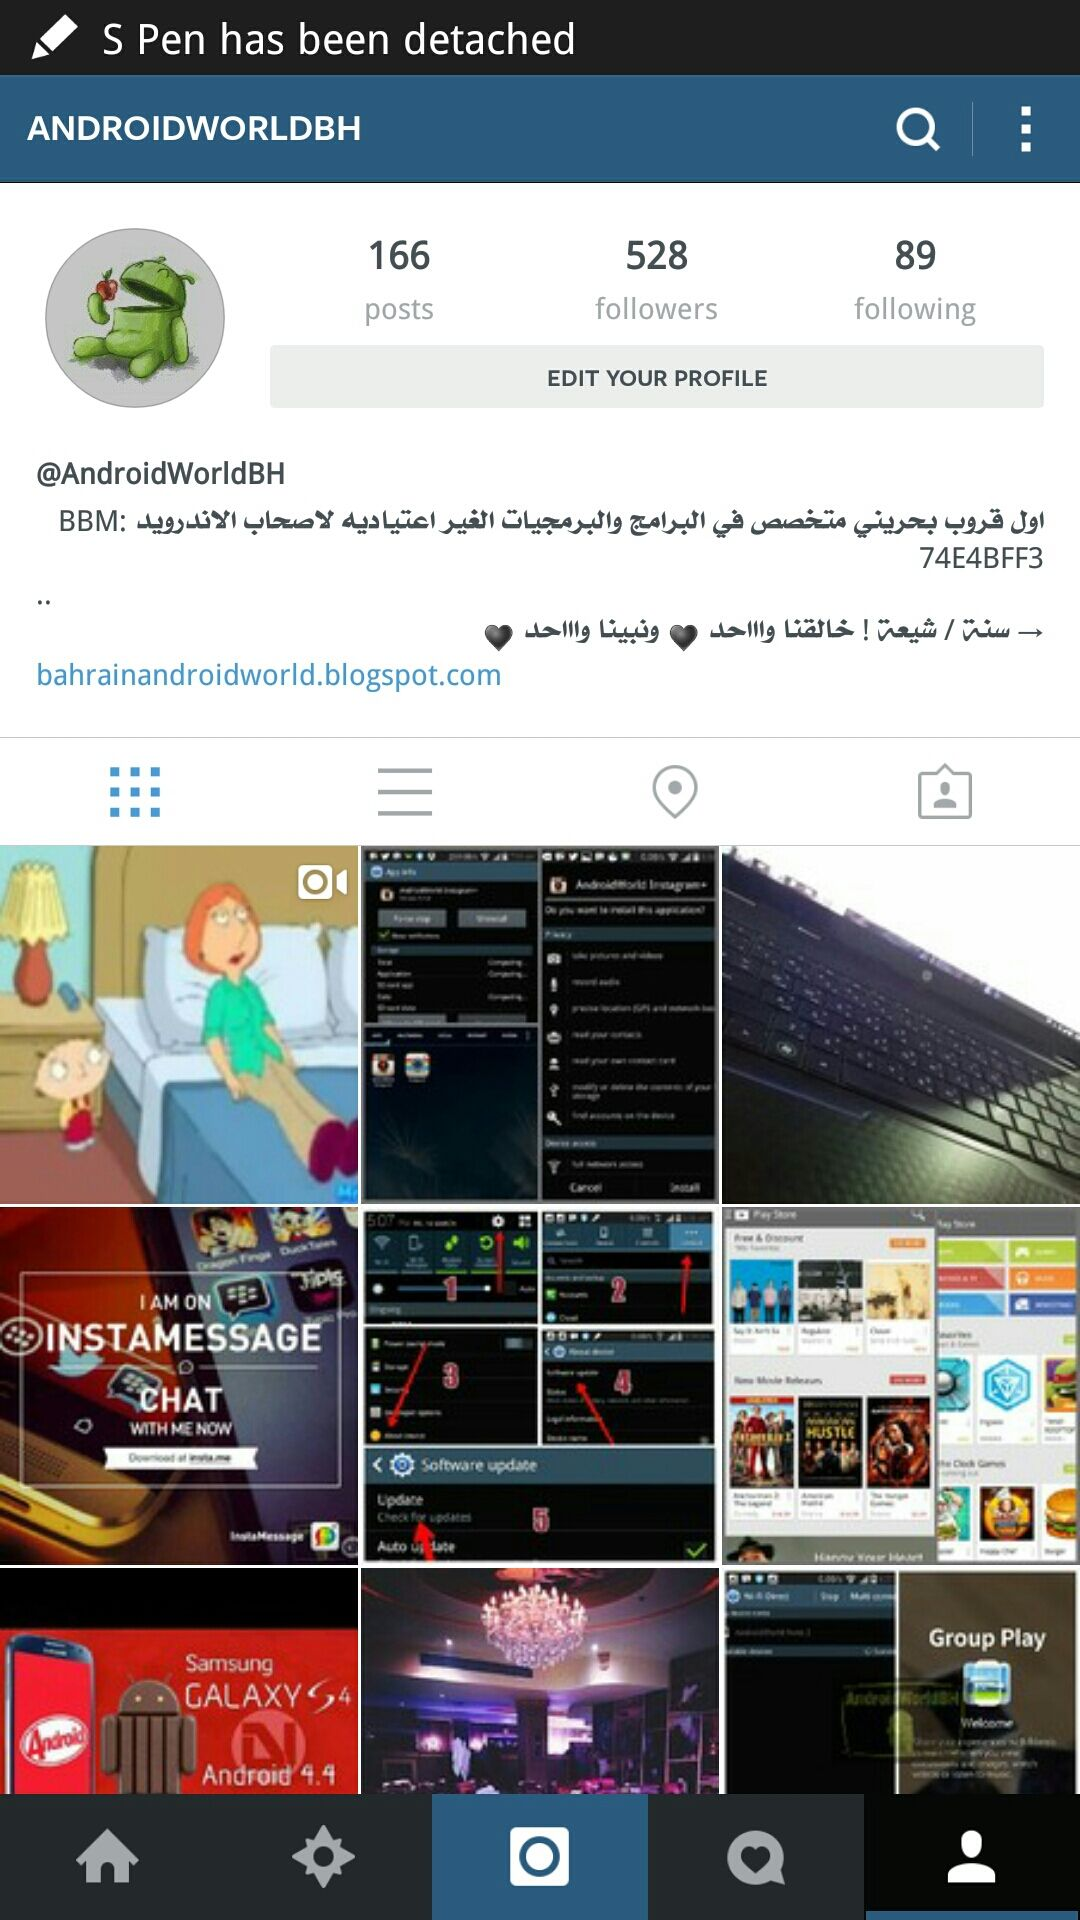 [APP][2.2+] INSTWOGRAM Two Instagram Accou… Android